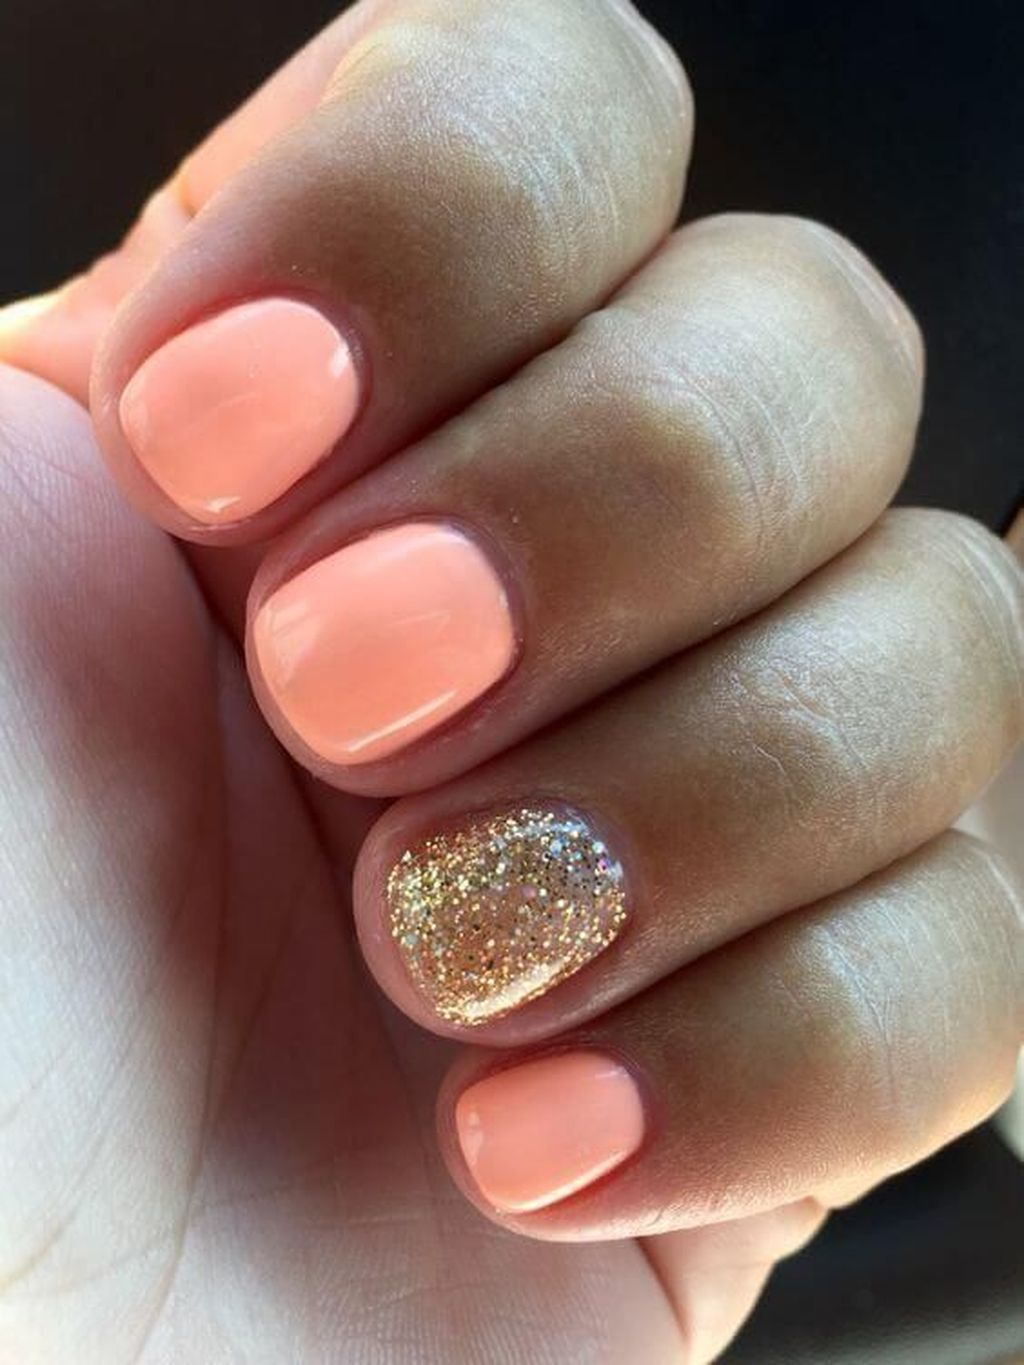 56 The Best Nail Color Ideas For Spring Trend 2018 Outfitoday Co Trendy Nails Nail Designs Summer Manicure Nail Designs